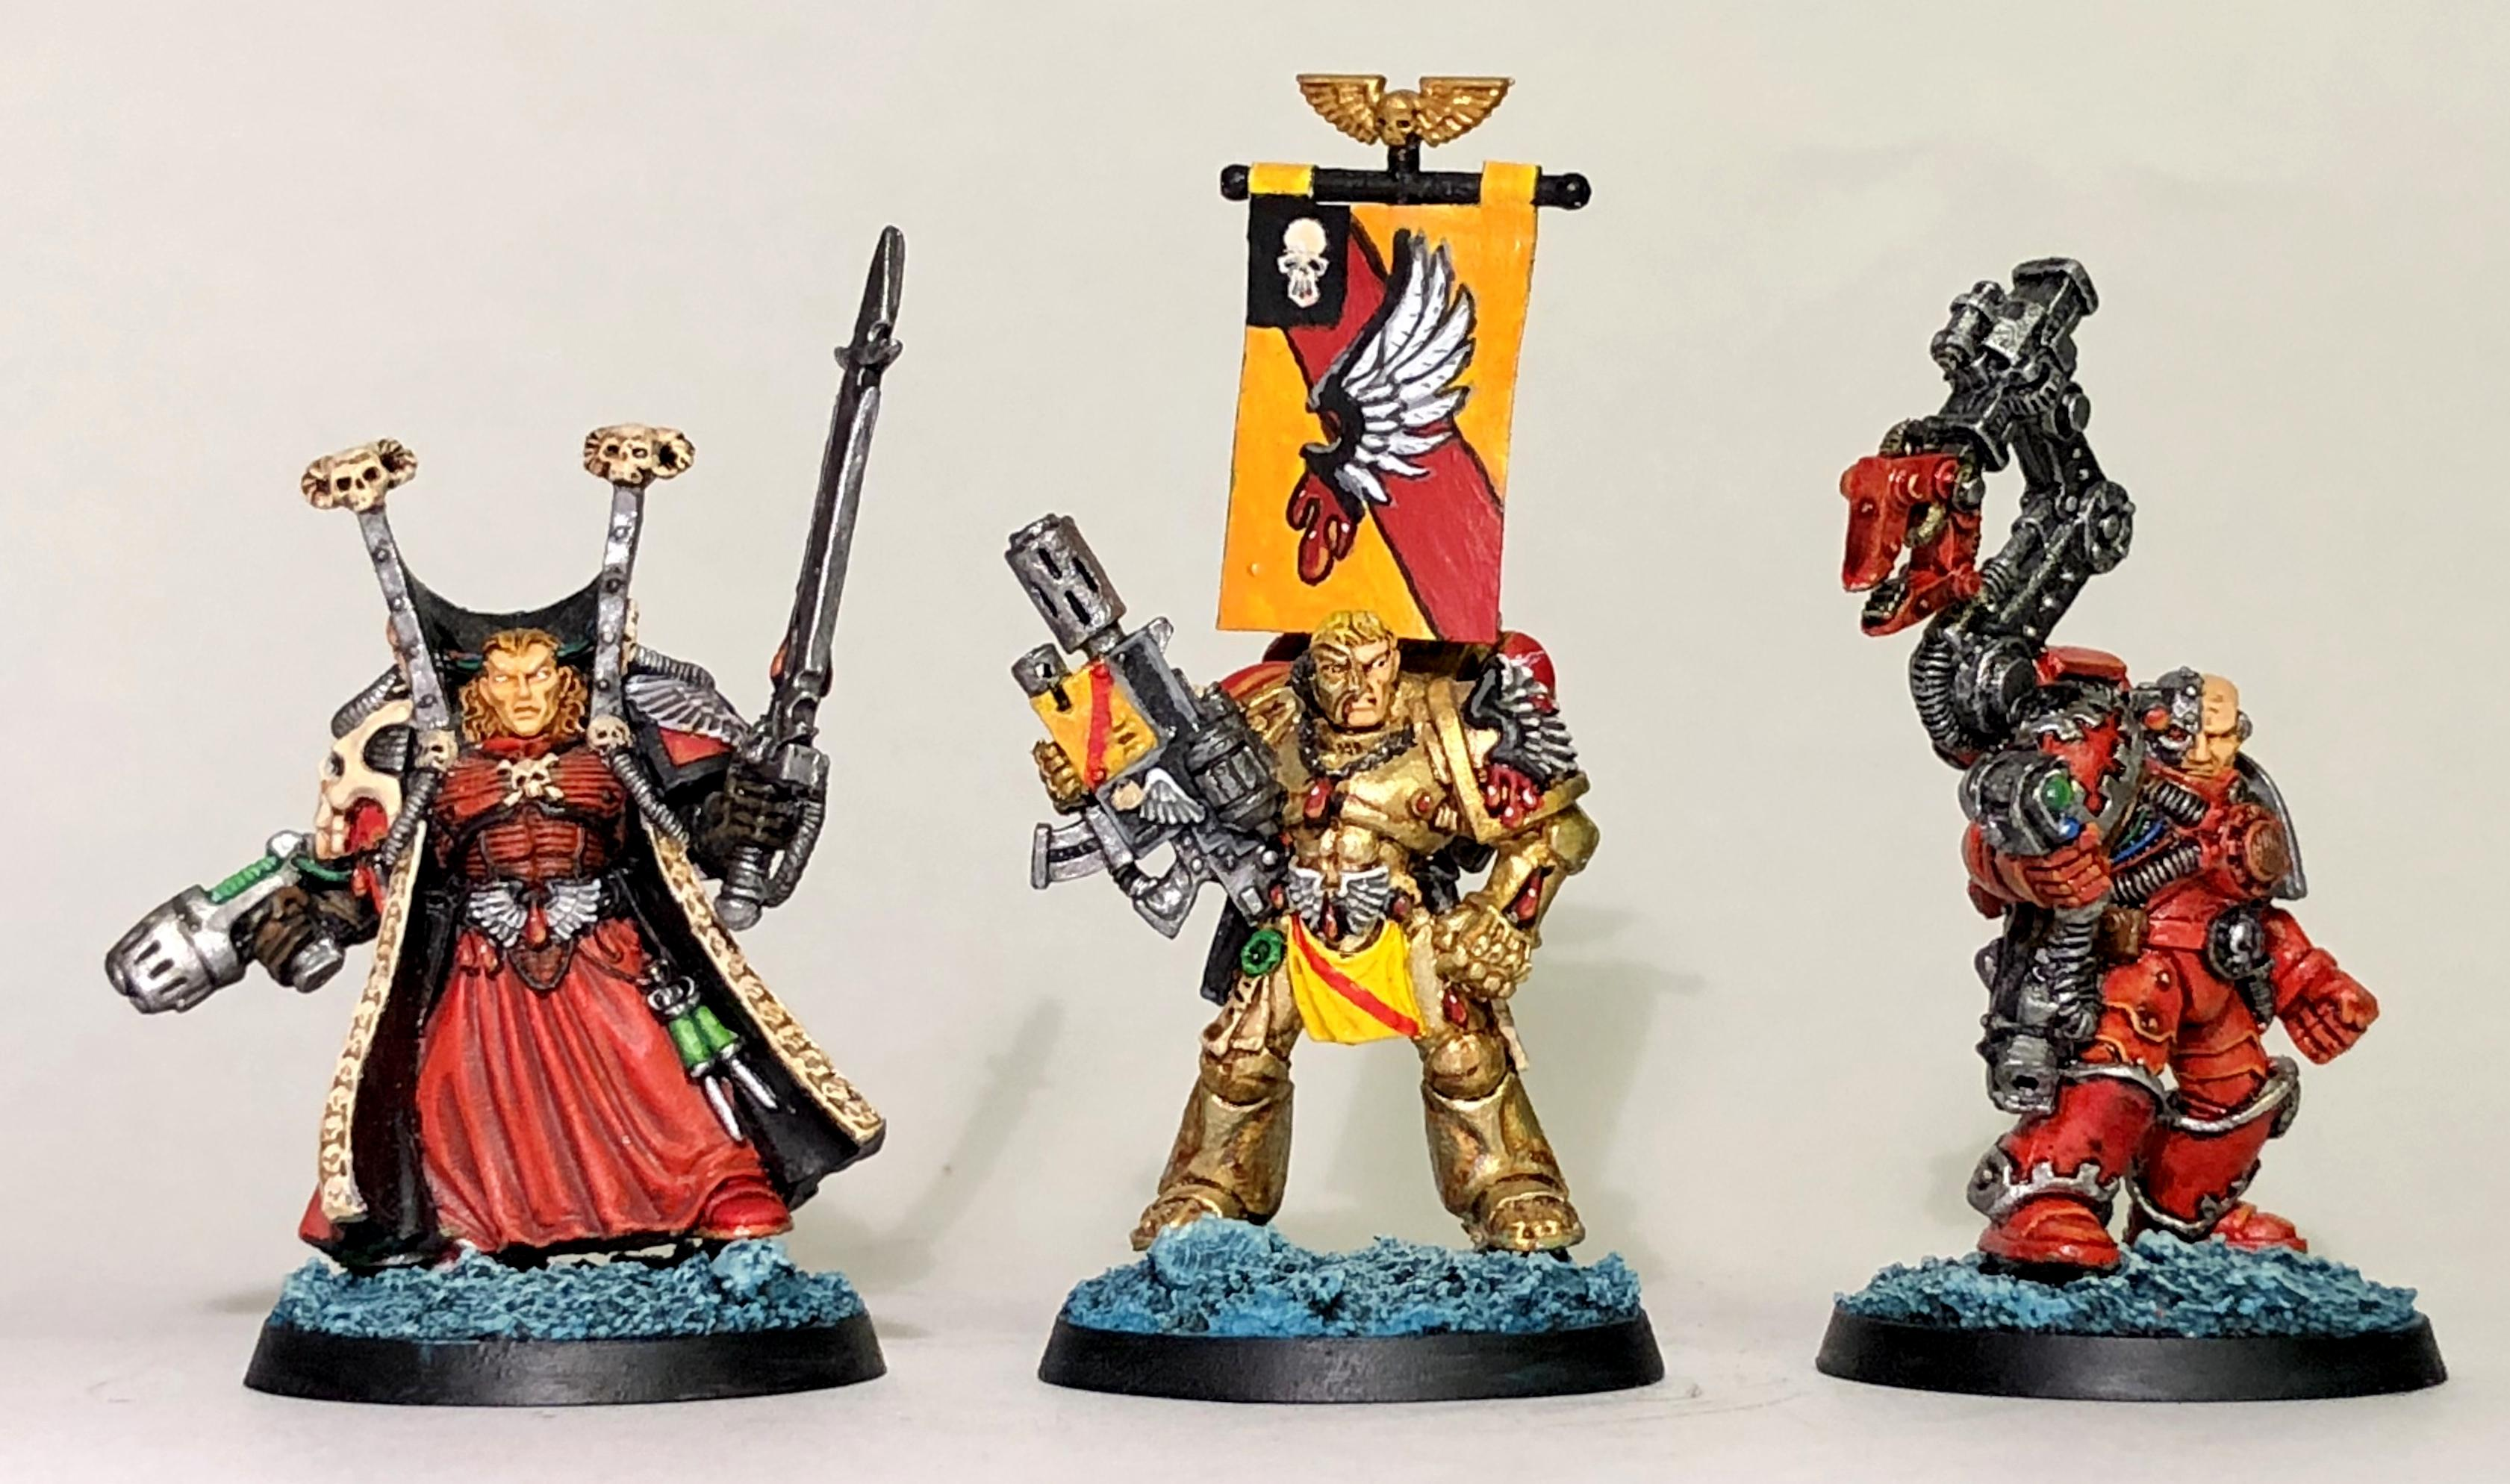 2nd Edition, Blood Angels, Captain, Characters, Librarian, Mephiston, Space Marines, Techmarine, Tycho